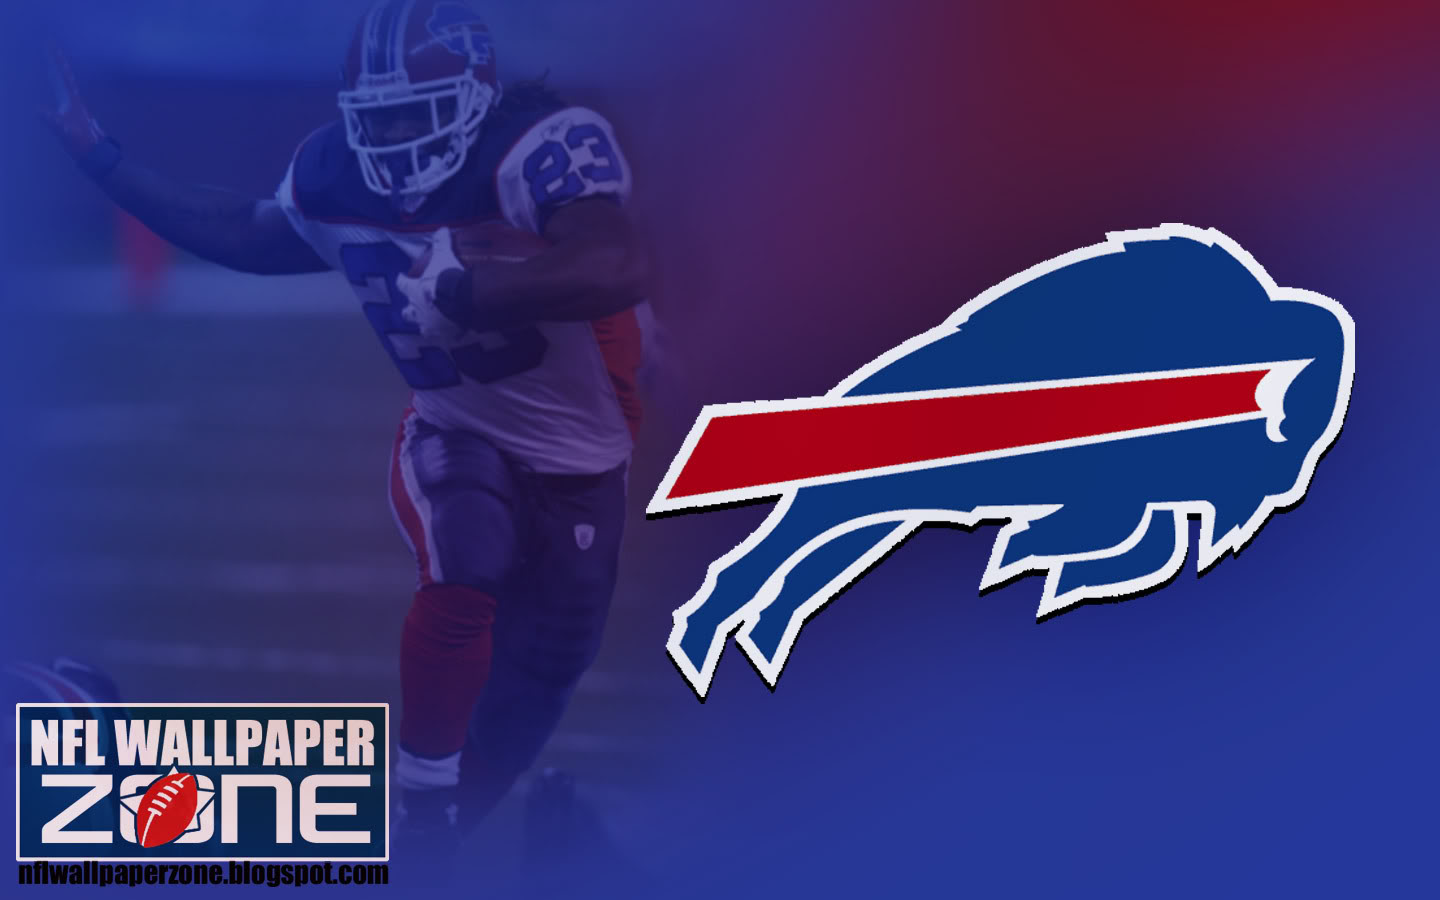 NFL Wallpaper Zone Buffalo Bills Wallpaper   Bills Logo Desktop 1440x900